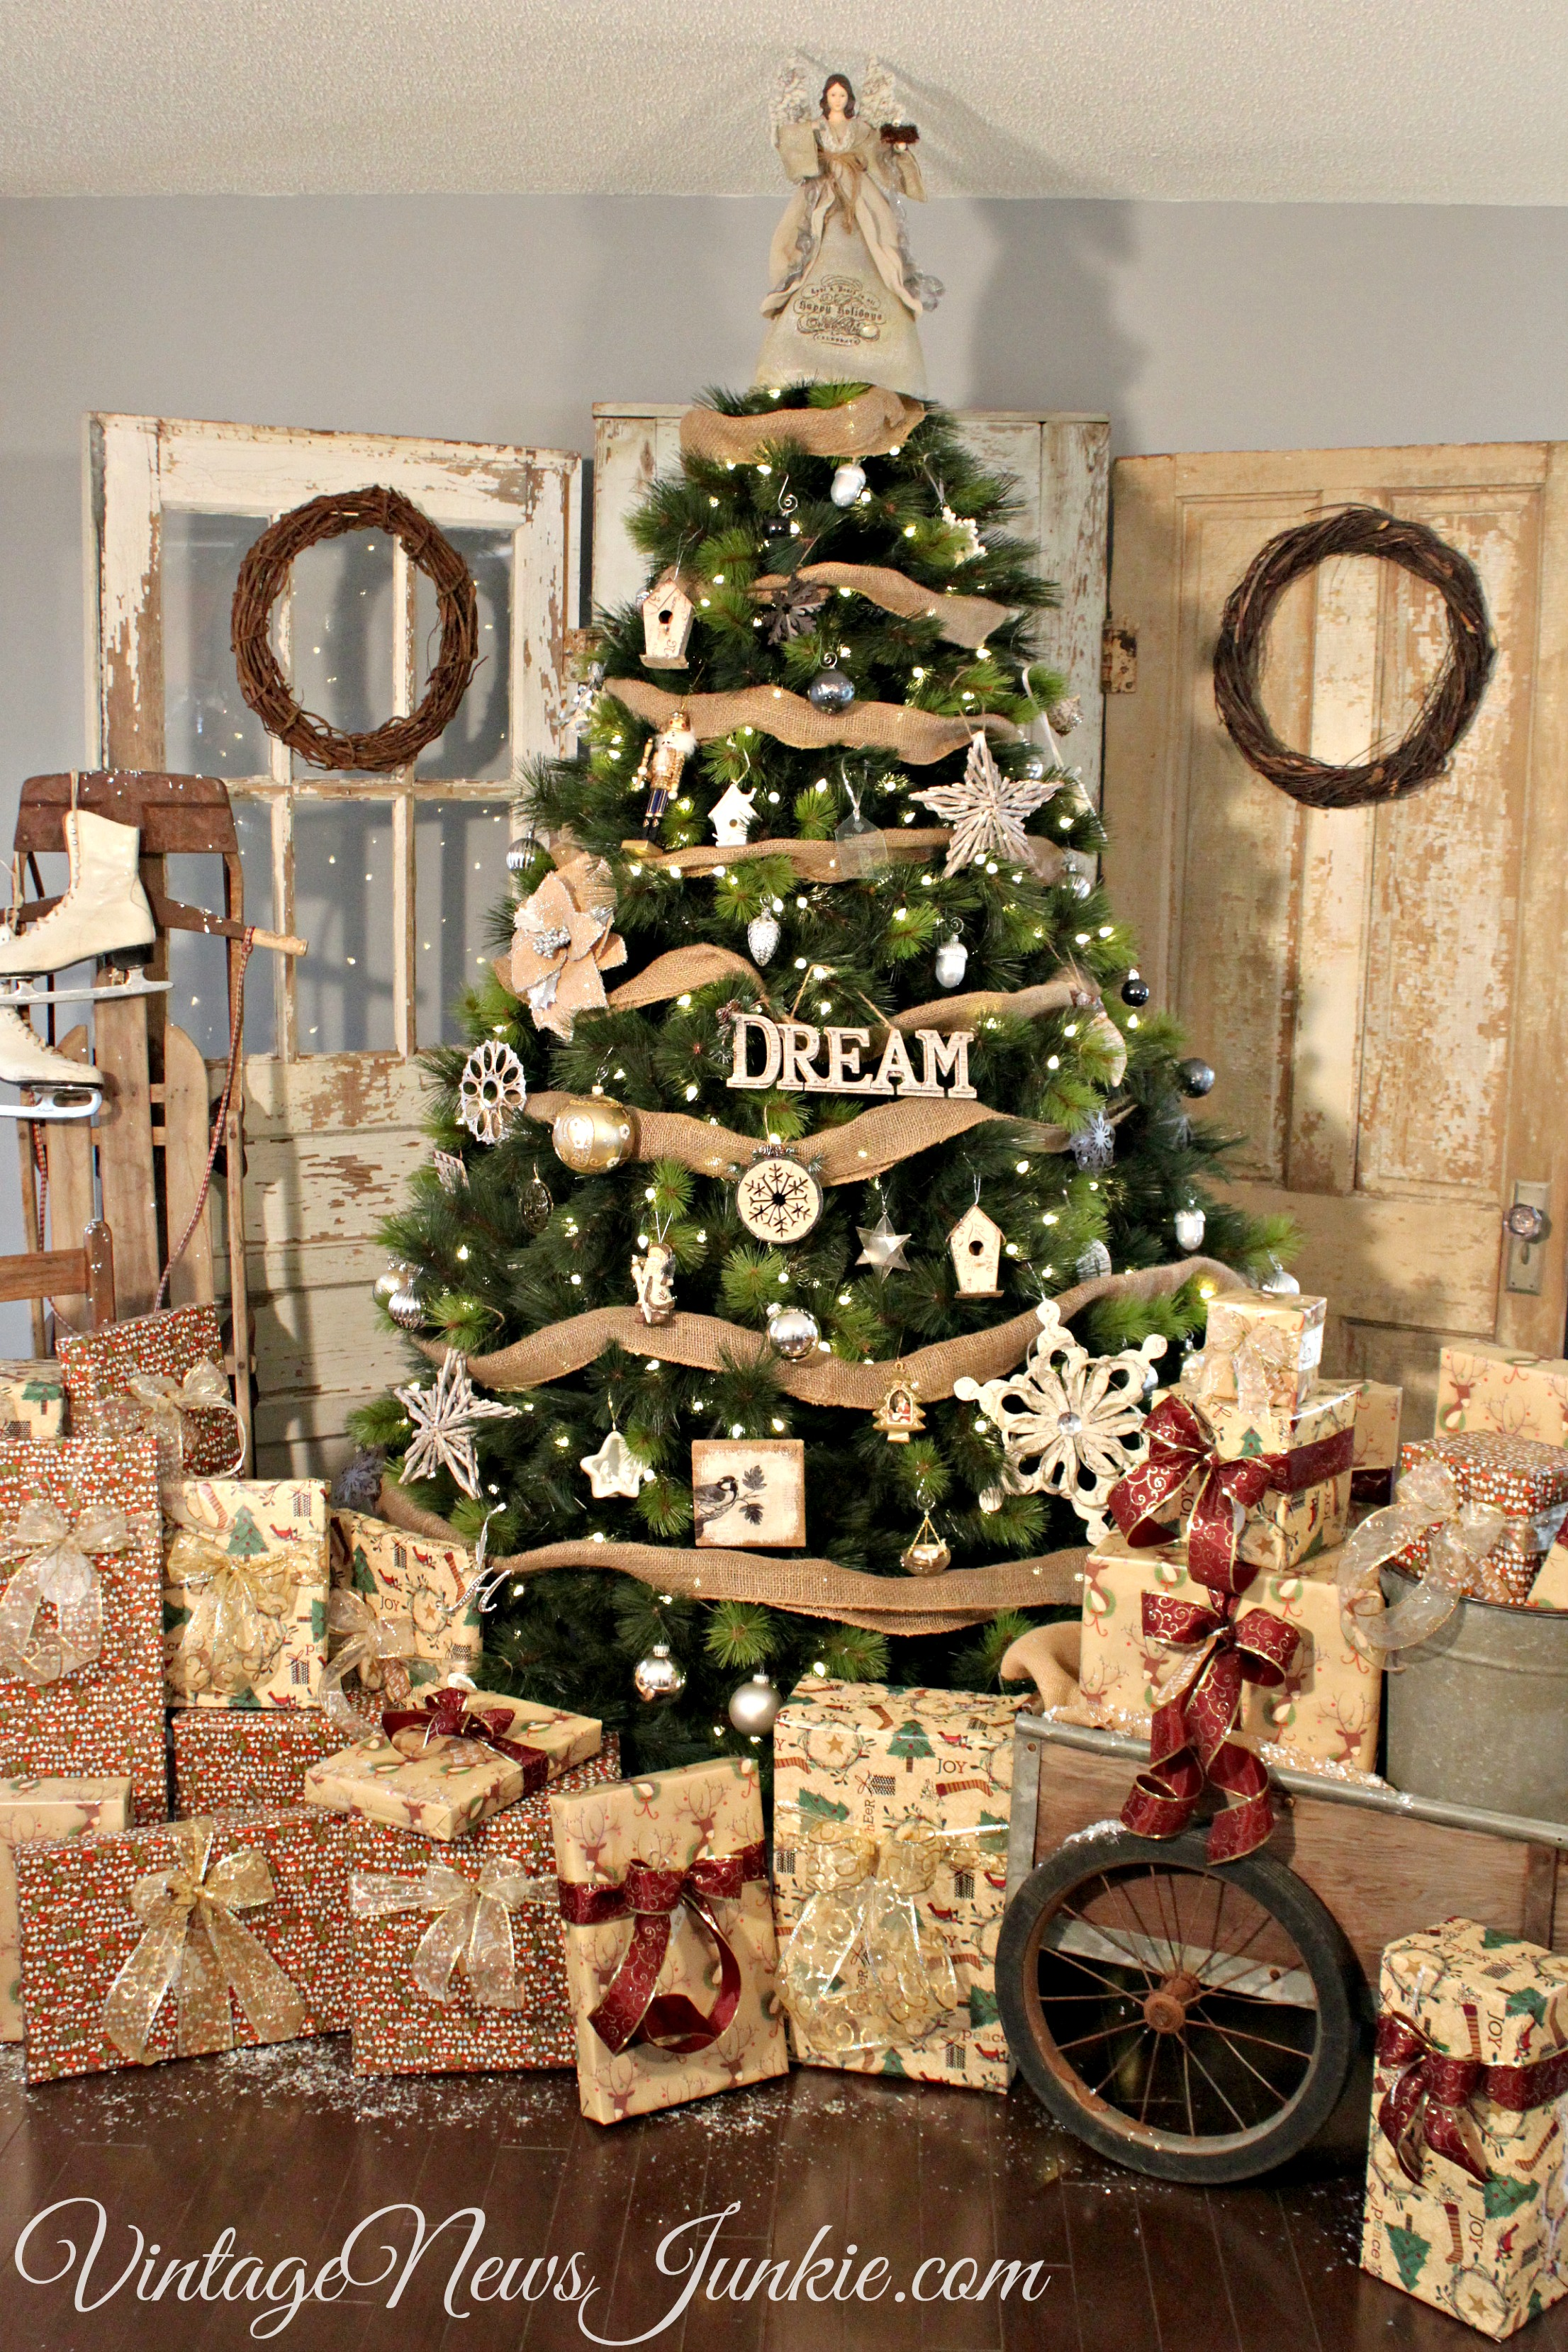 12 Creative Christmas Tree Ideas (and a Giveaway) - Thistlewood Farm